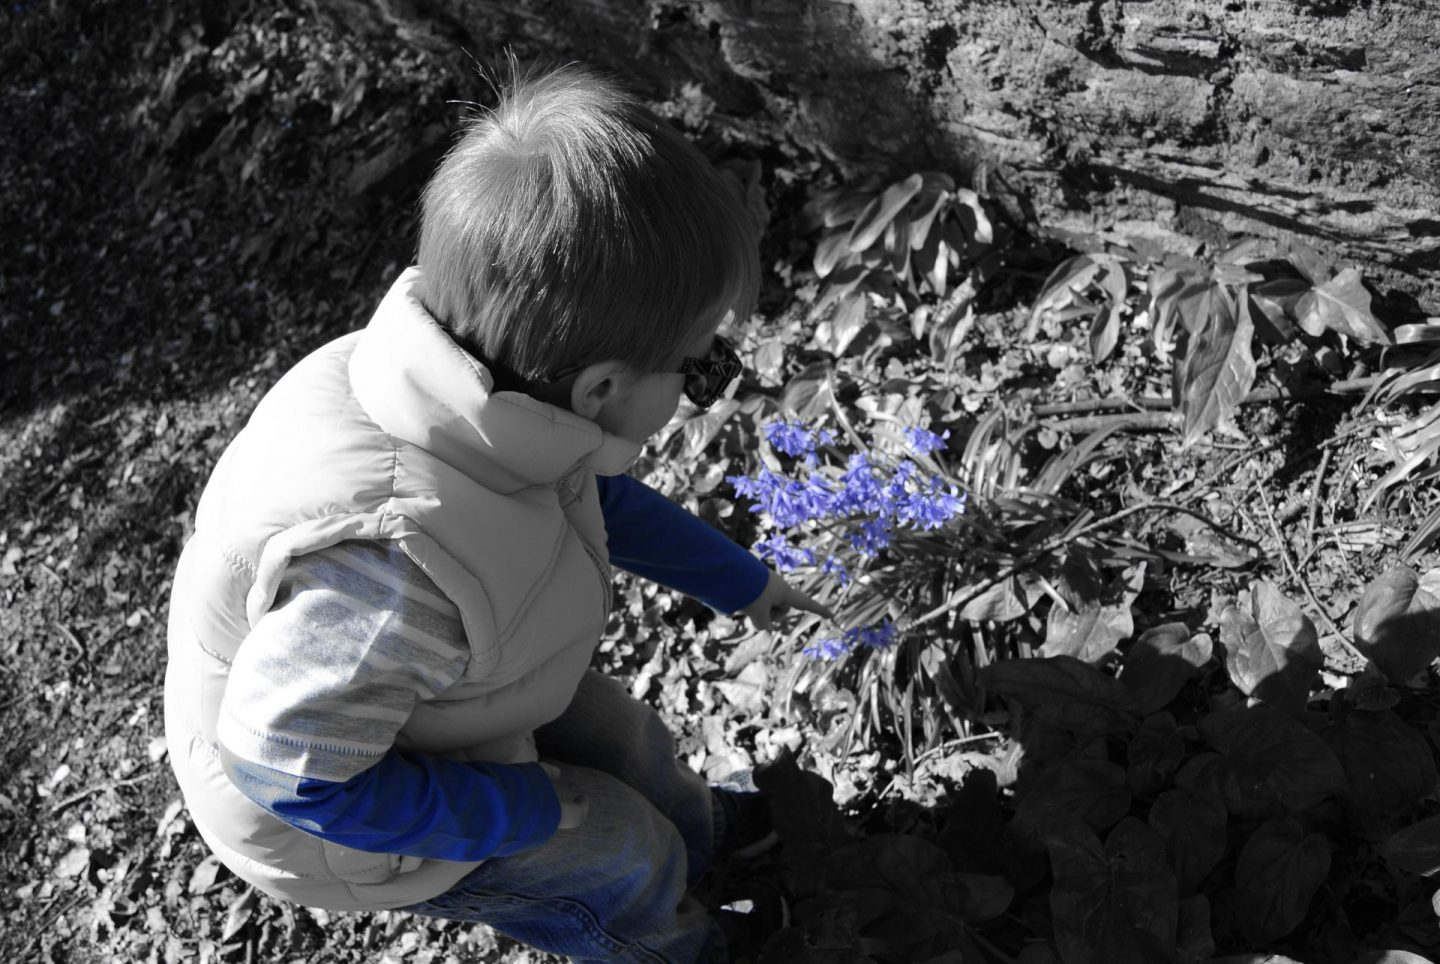 boy in a blue top picking a blue flower